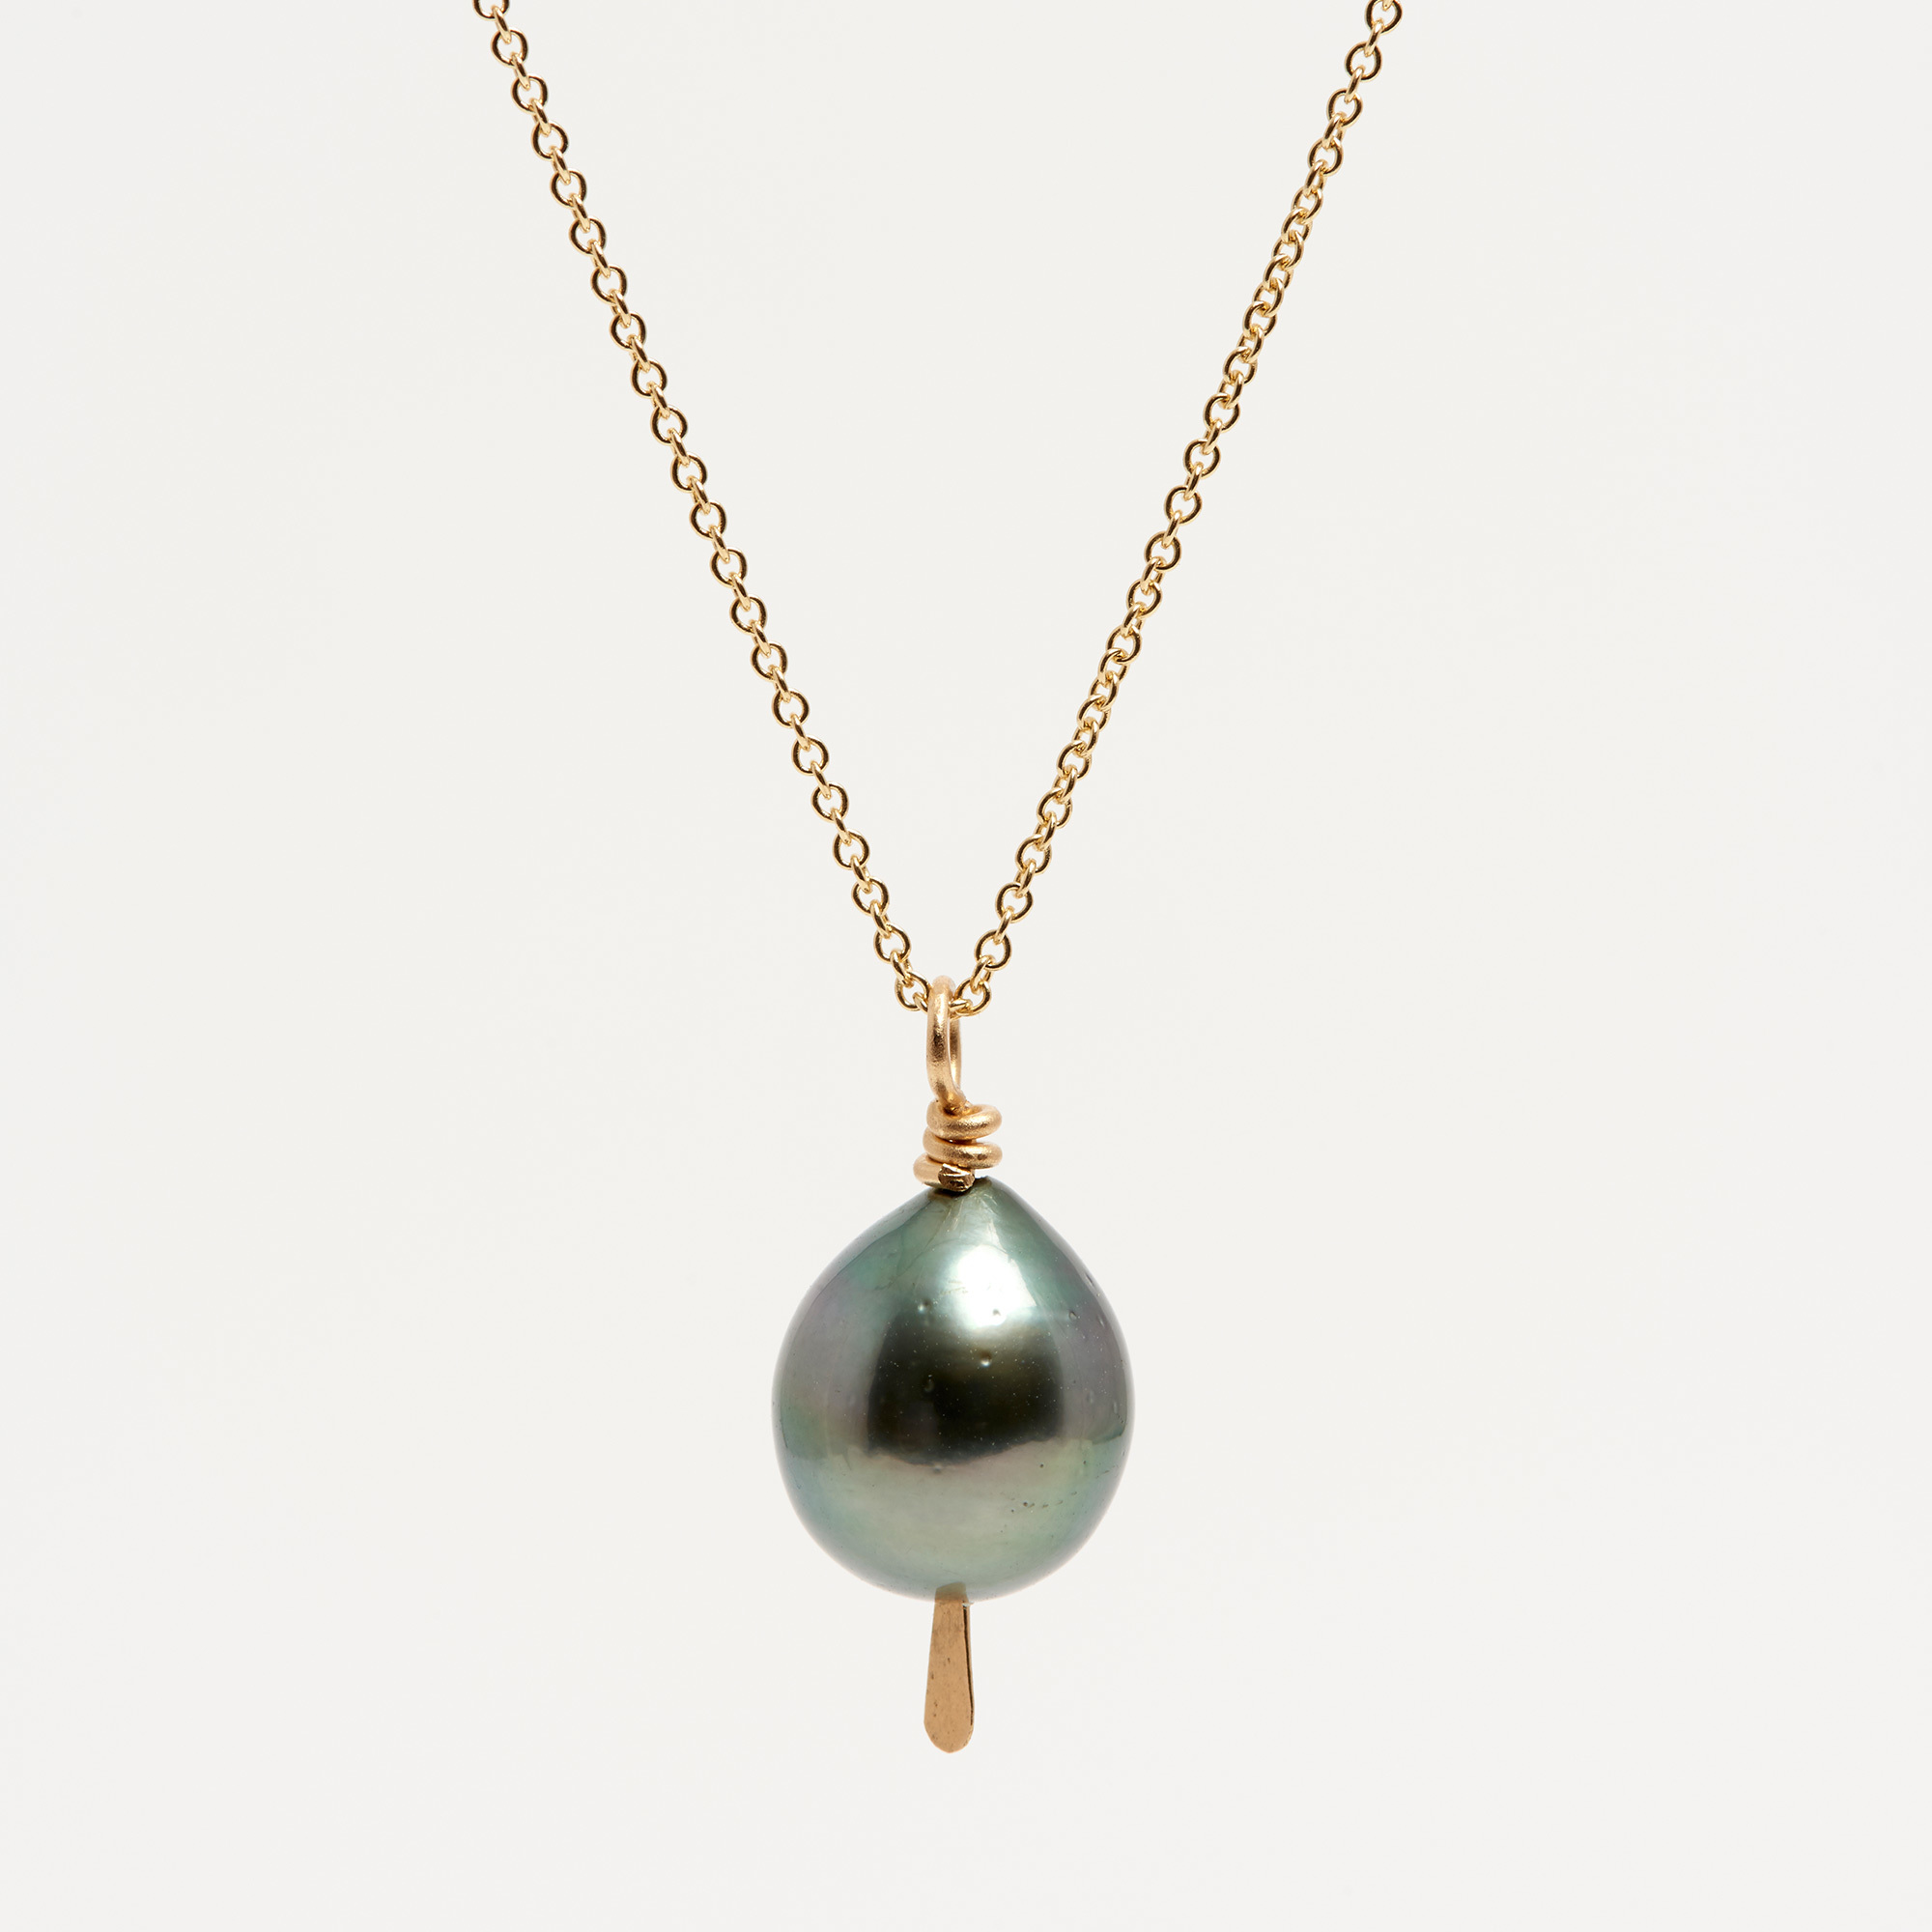 Pearl Jewellery Necklace >> 14K Gold Black Tahitian Pearl Drop Necklace | The Garnered